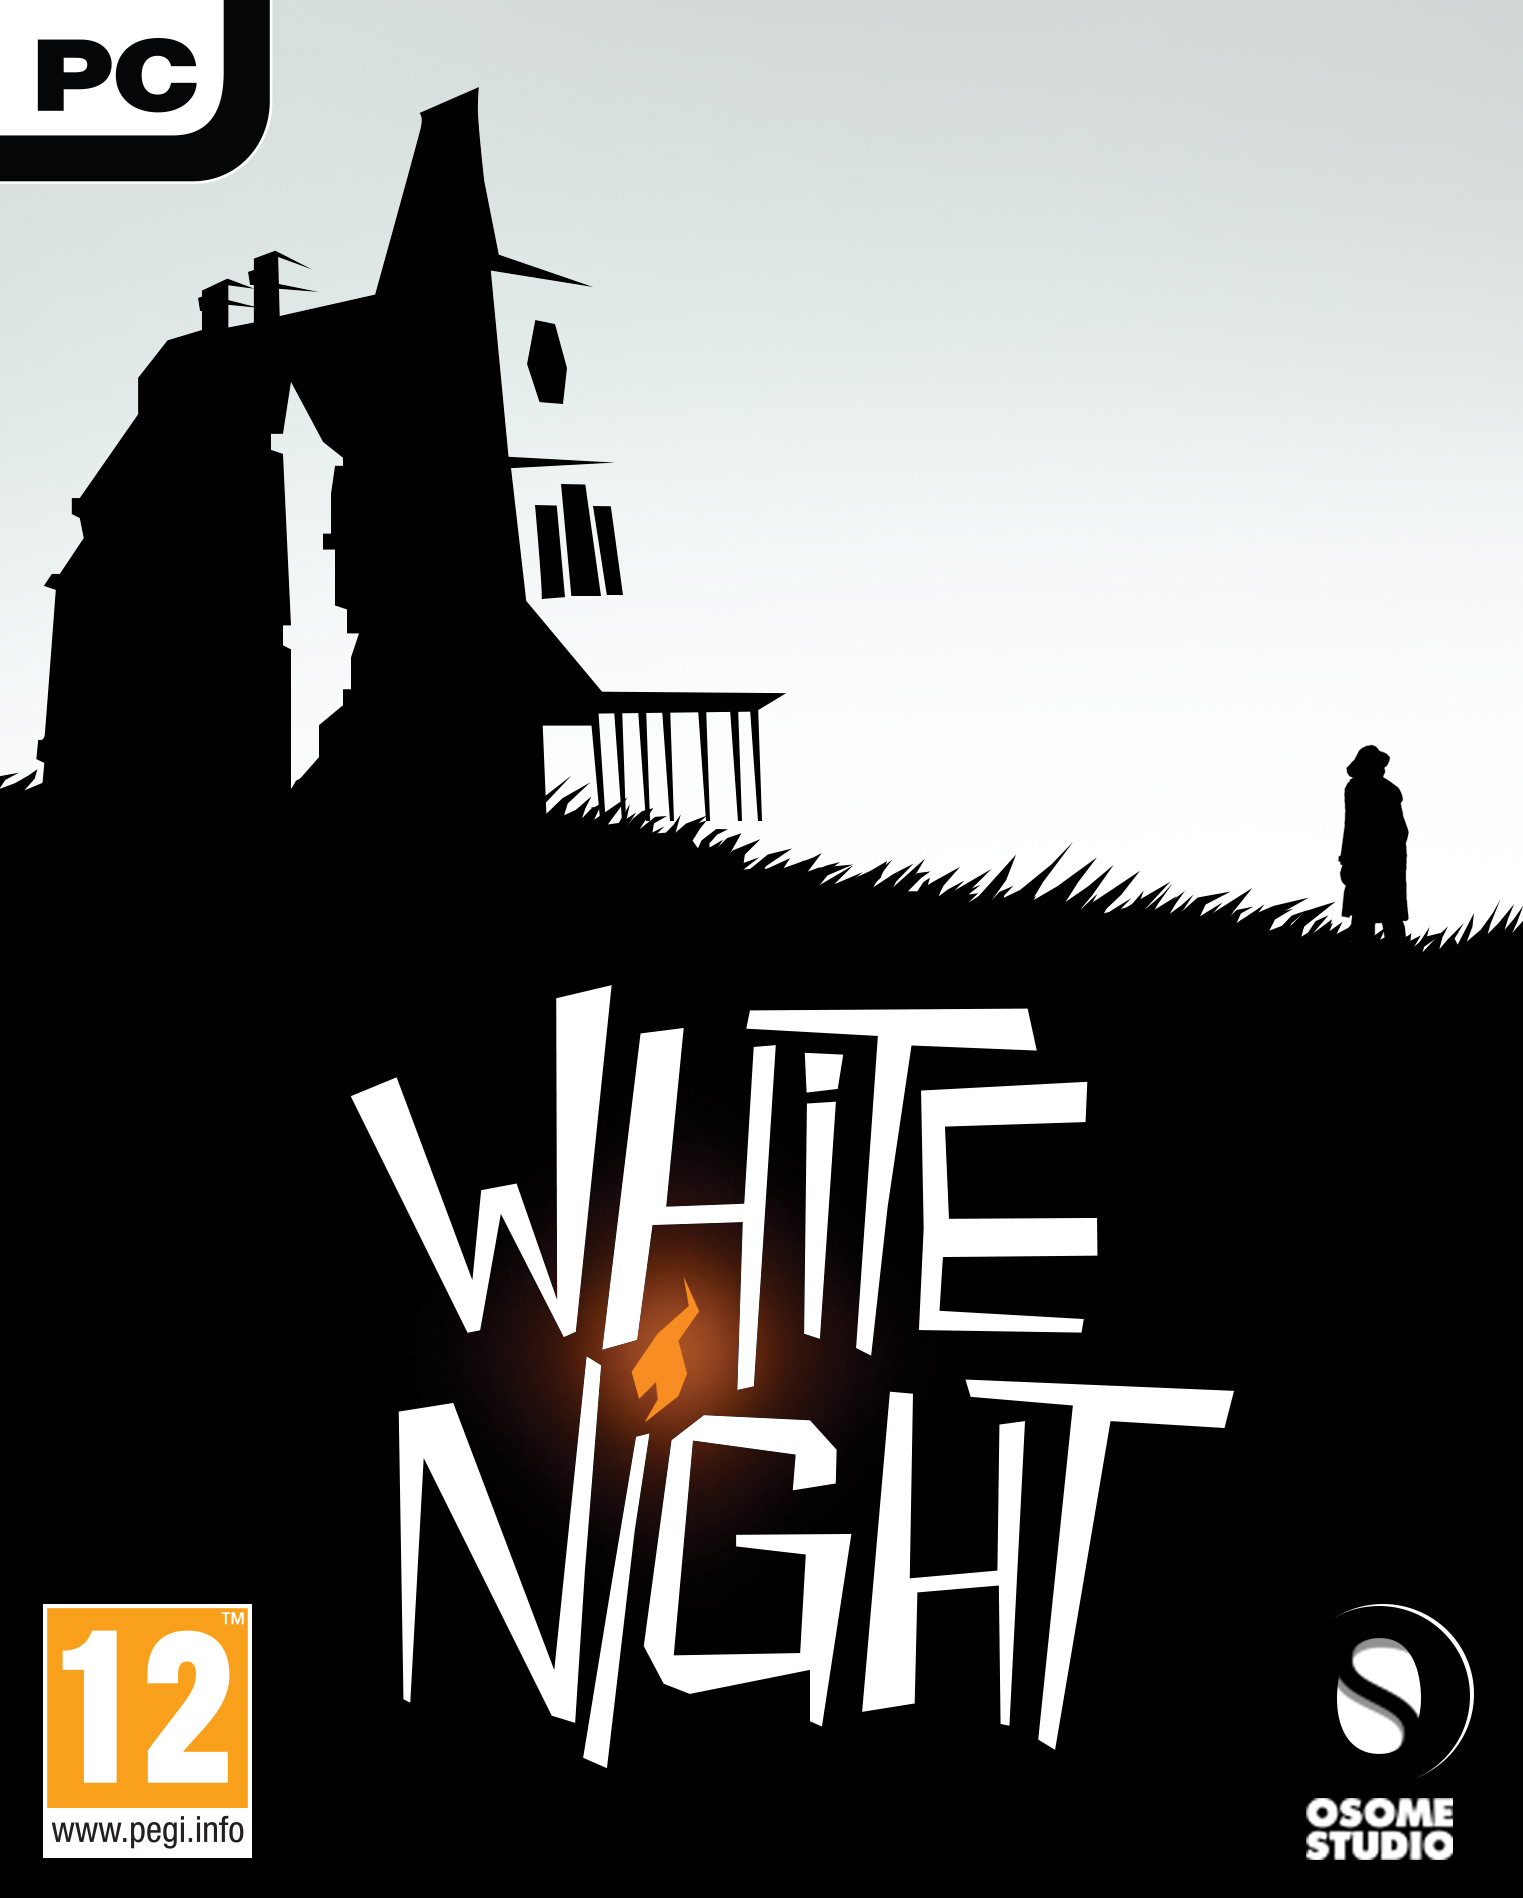 WhiteNight_PC_Packmock_PEGI